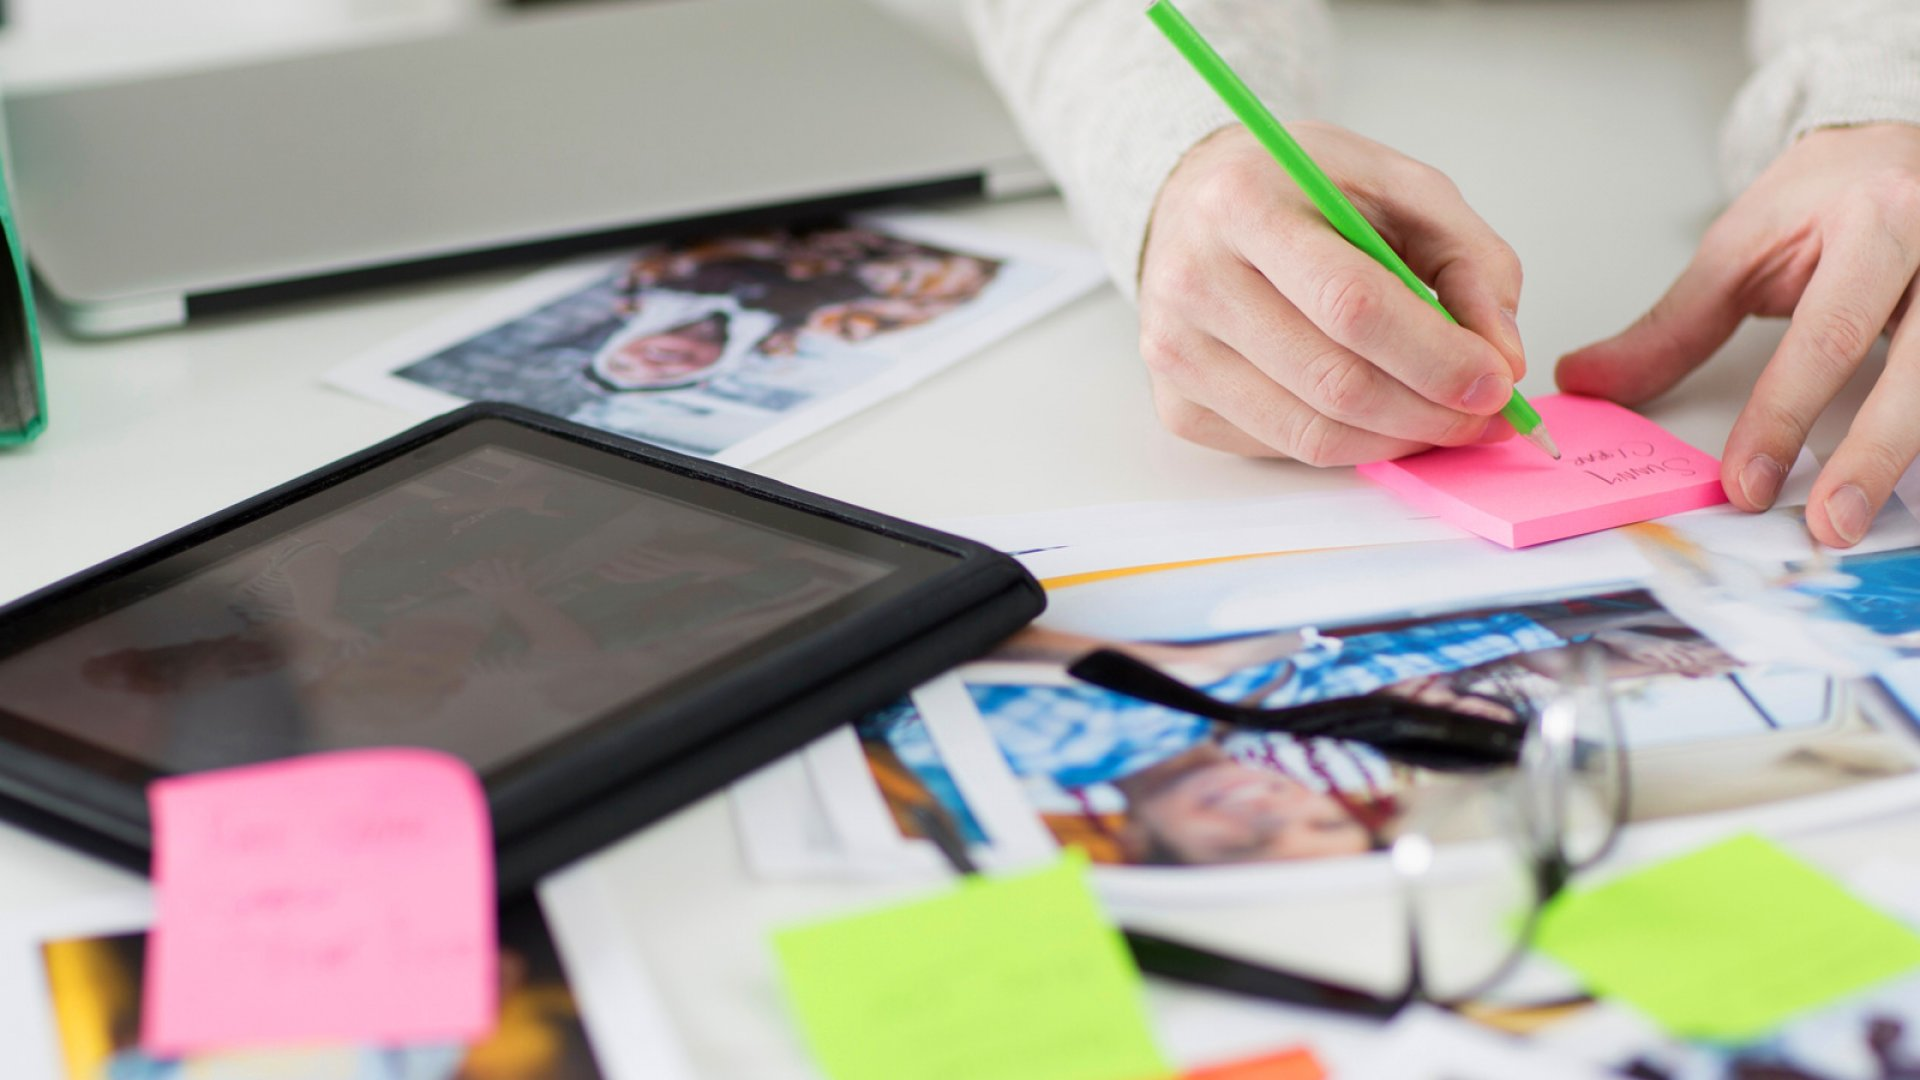 Simple Trick for Better Brainstorming Sessions